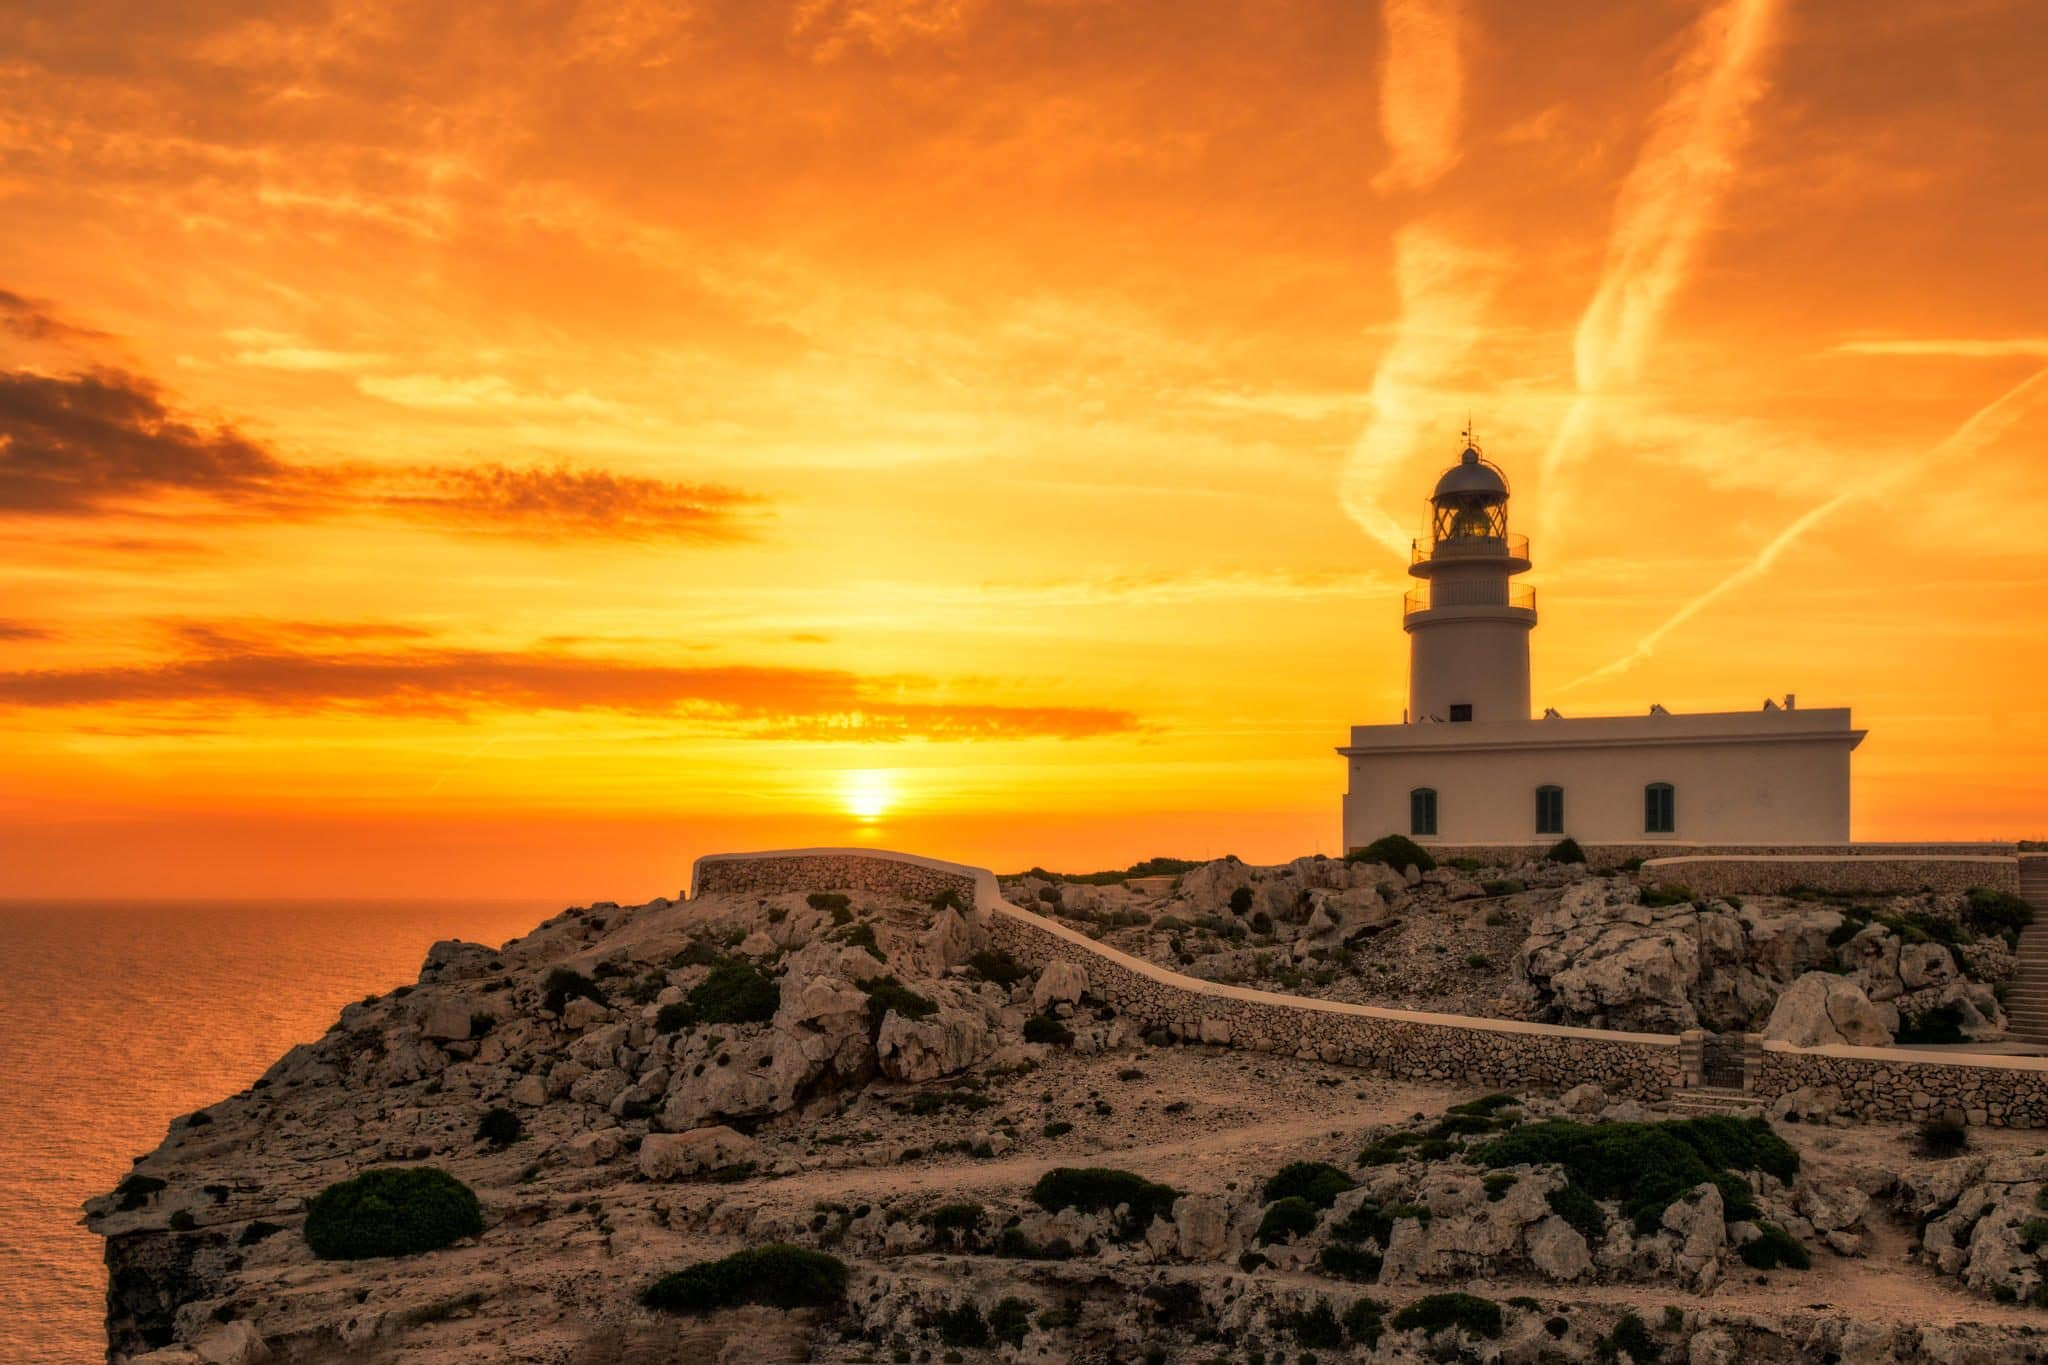 Lighthouse at Cabo de Cavalleria, Menorca during a sunrise, Spain.